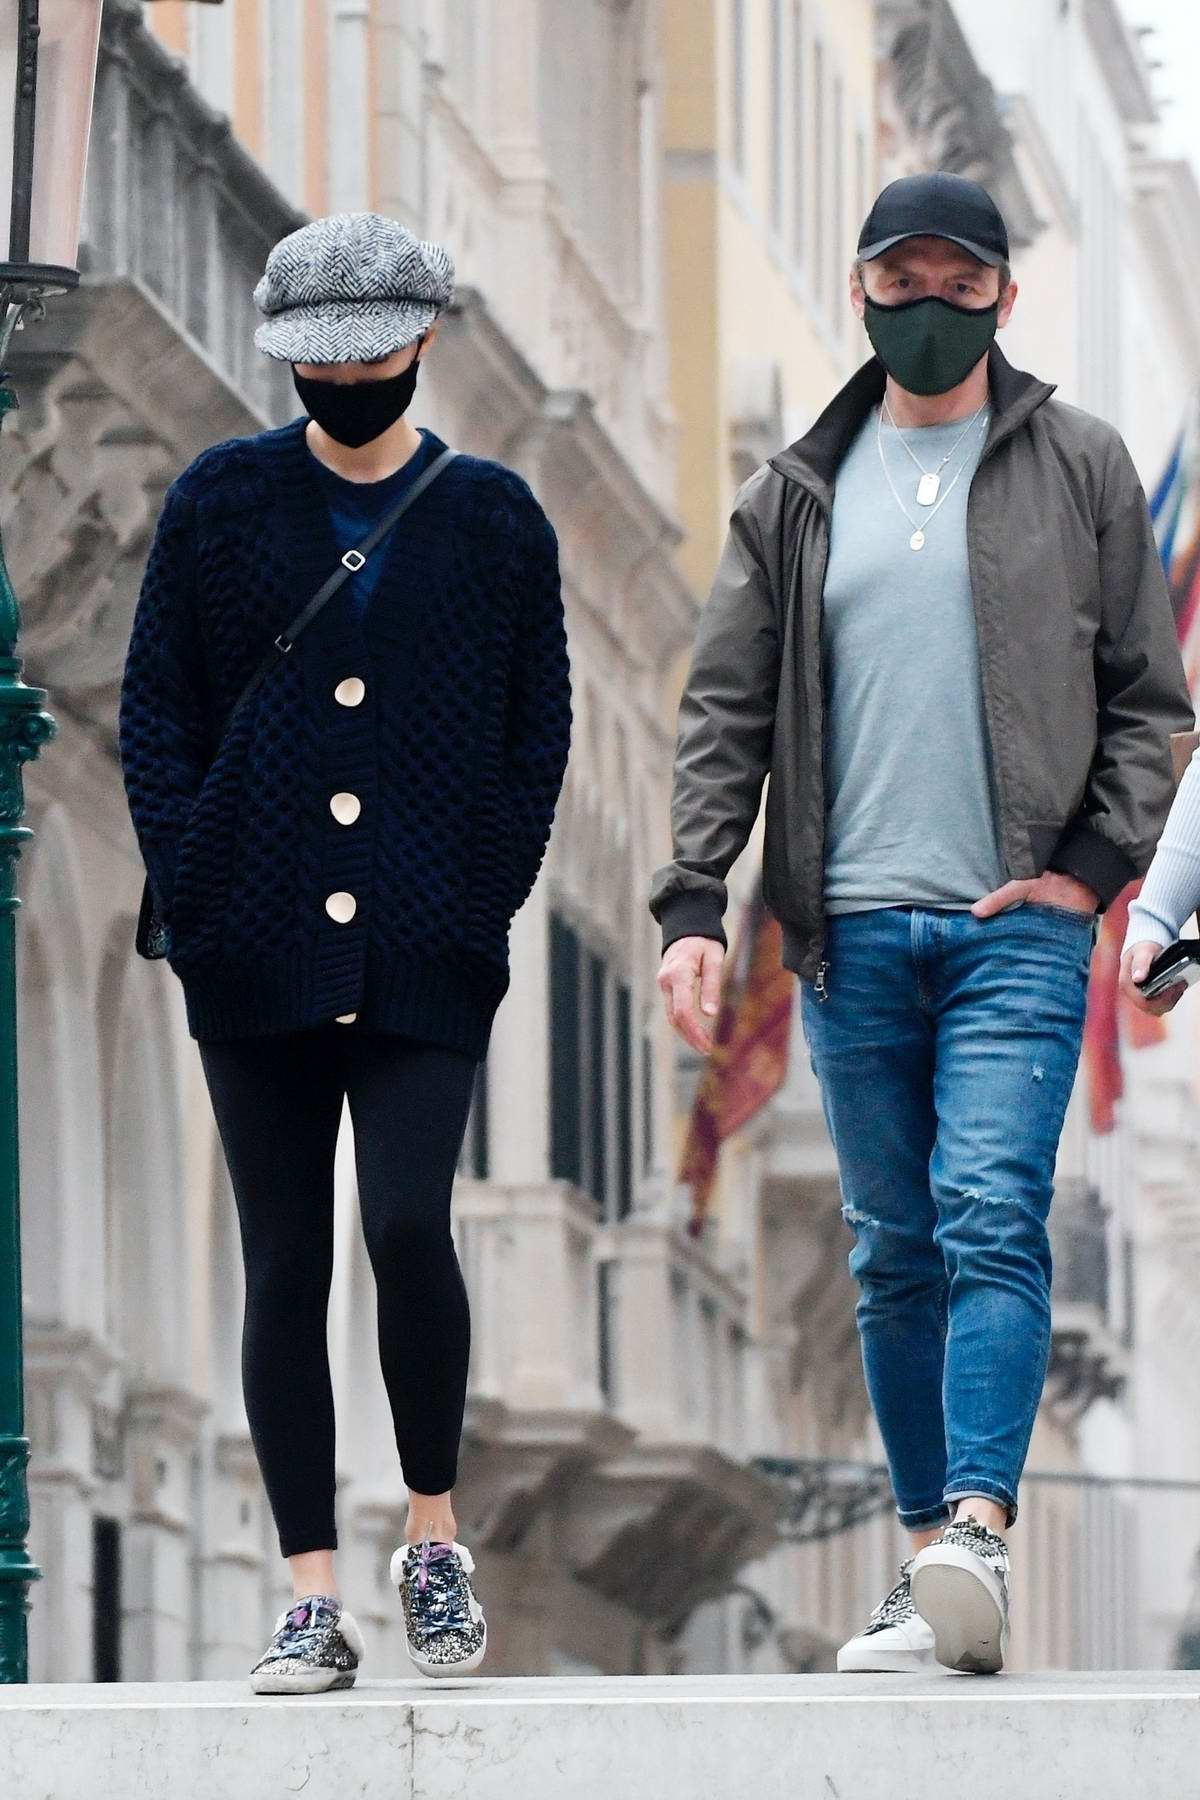 Pom Klementieff and Simon Pegg enjoy a stroll around town after a night of filming for 'Mission Impossible 7' in Venice, Italy